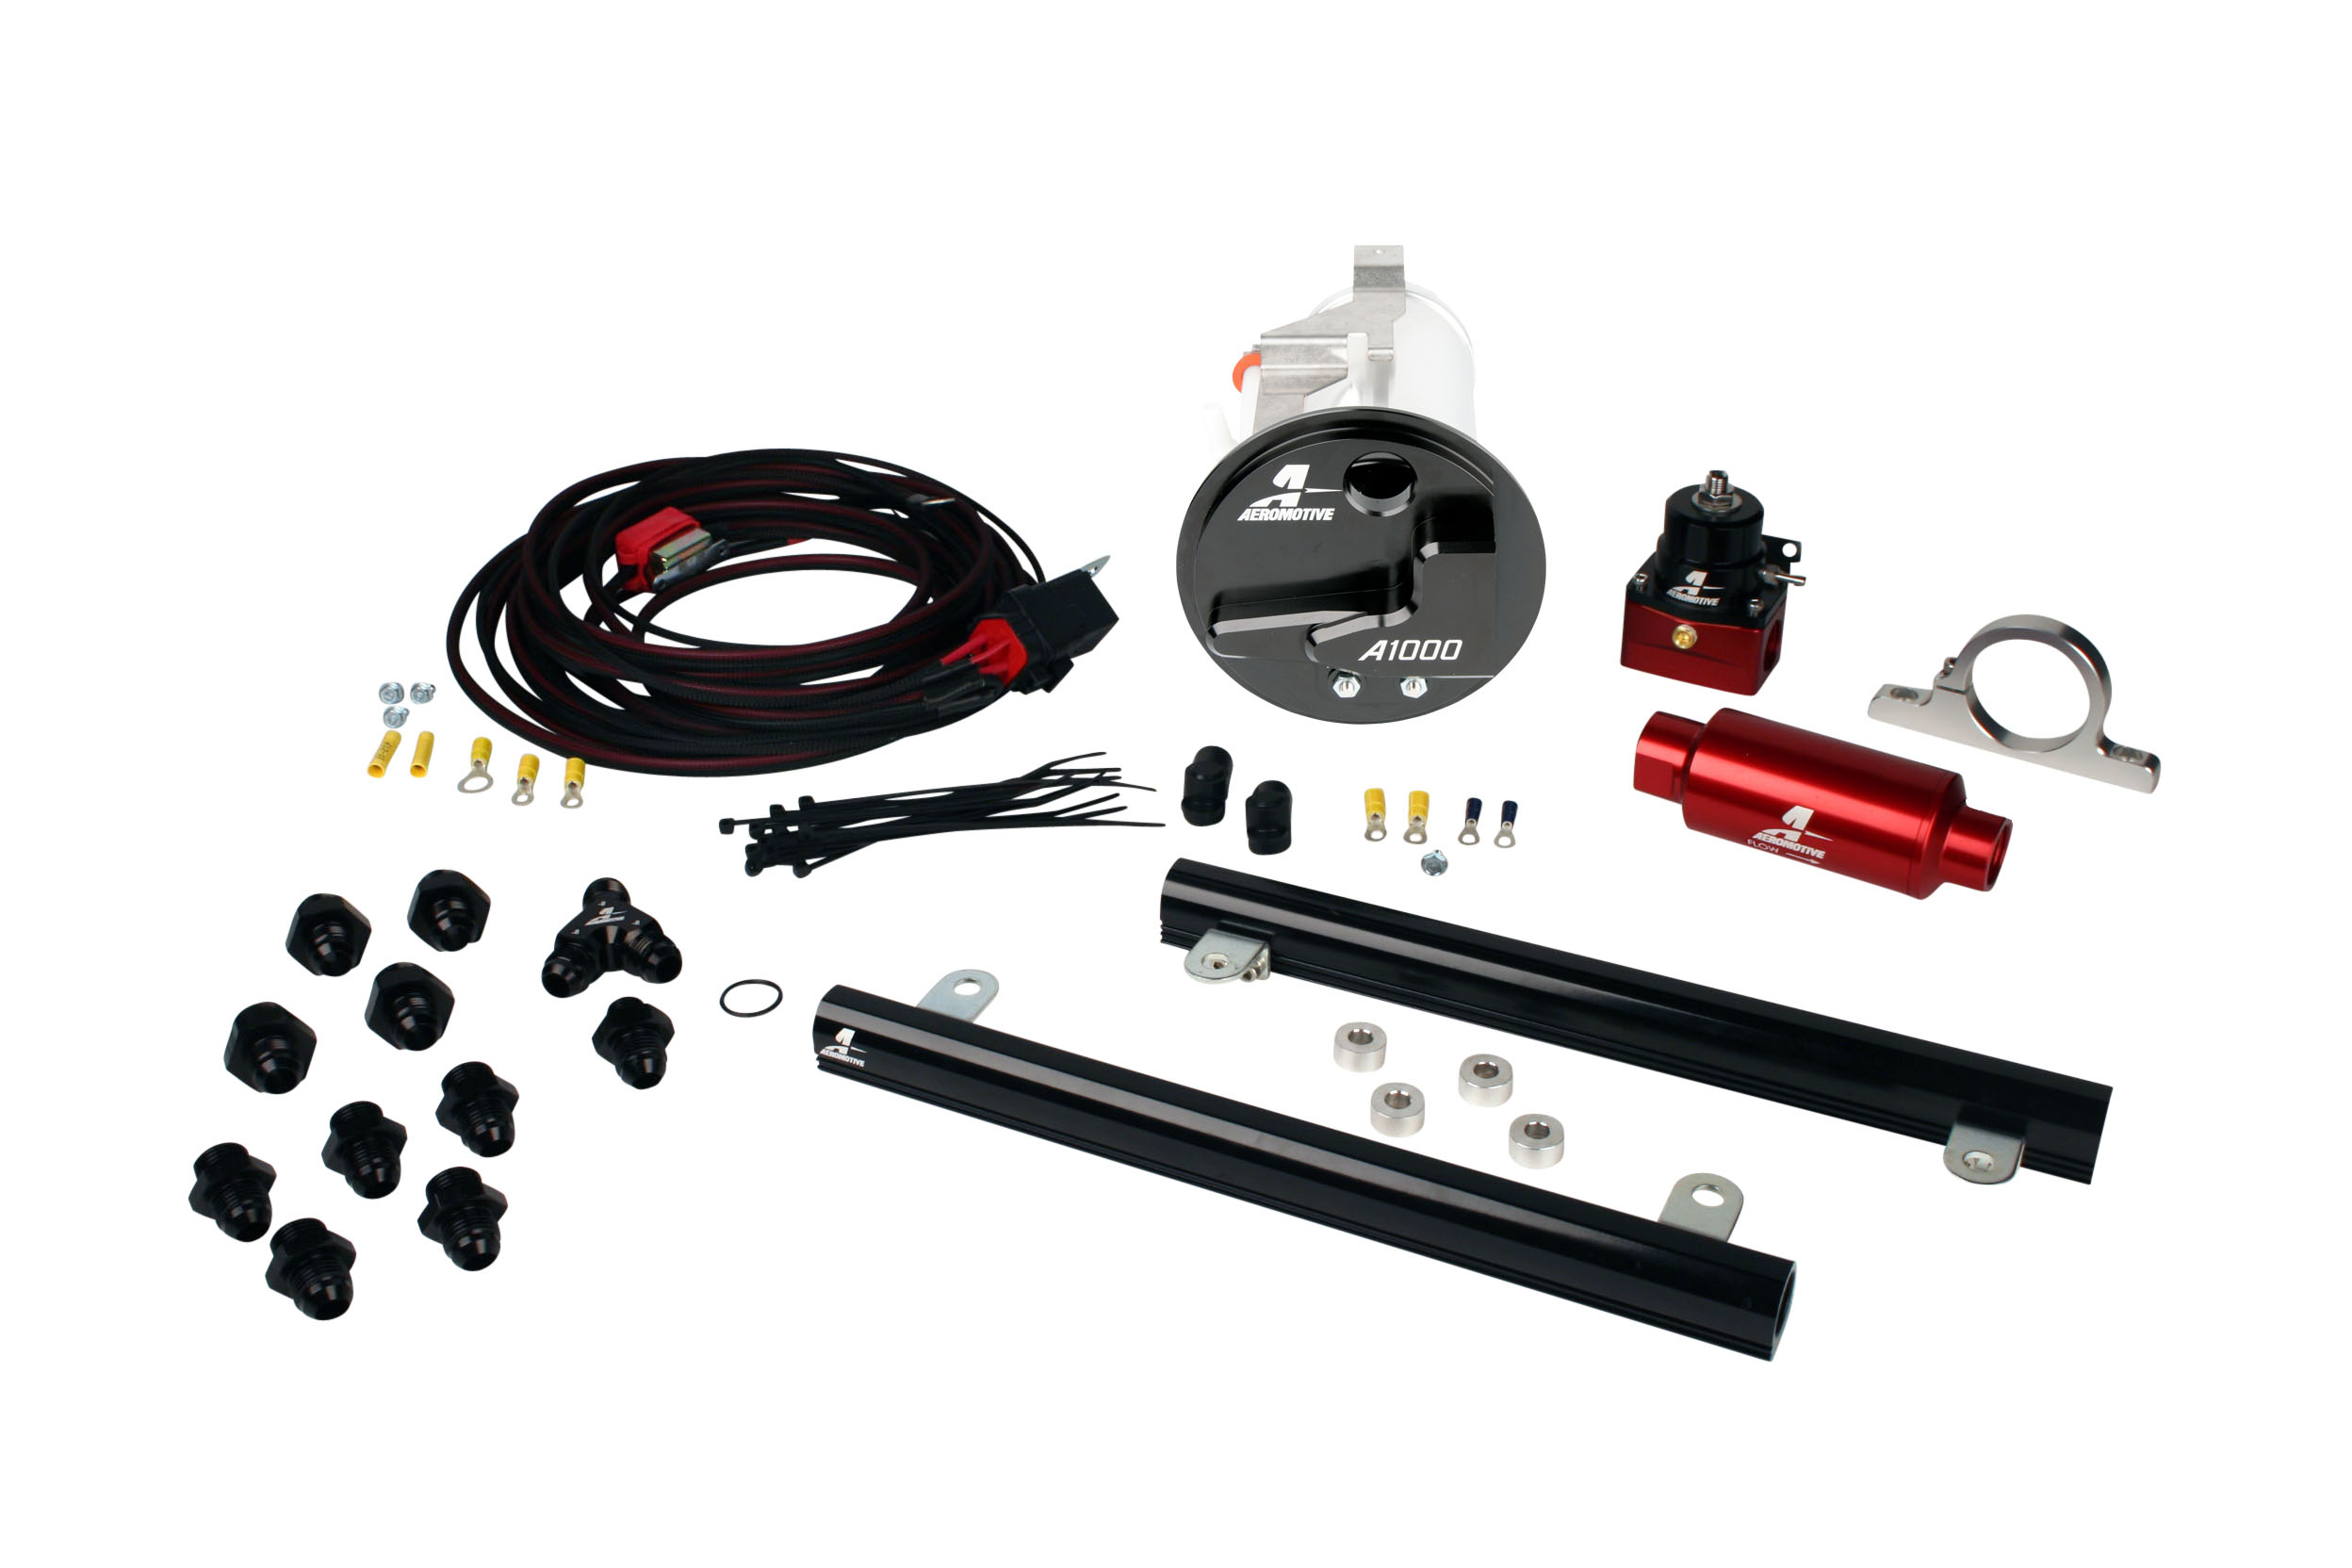 2005-2009 Ford Mustang GT Aeromotive Stealth A1000 Race Fuel System w/5.4L 4-V Fuel Rails Coyote Swap